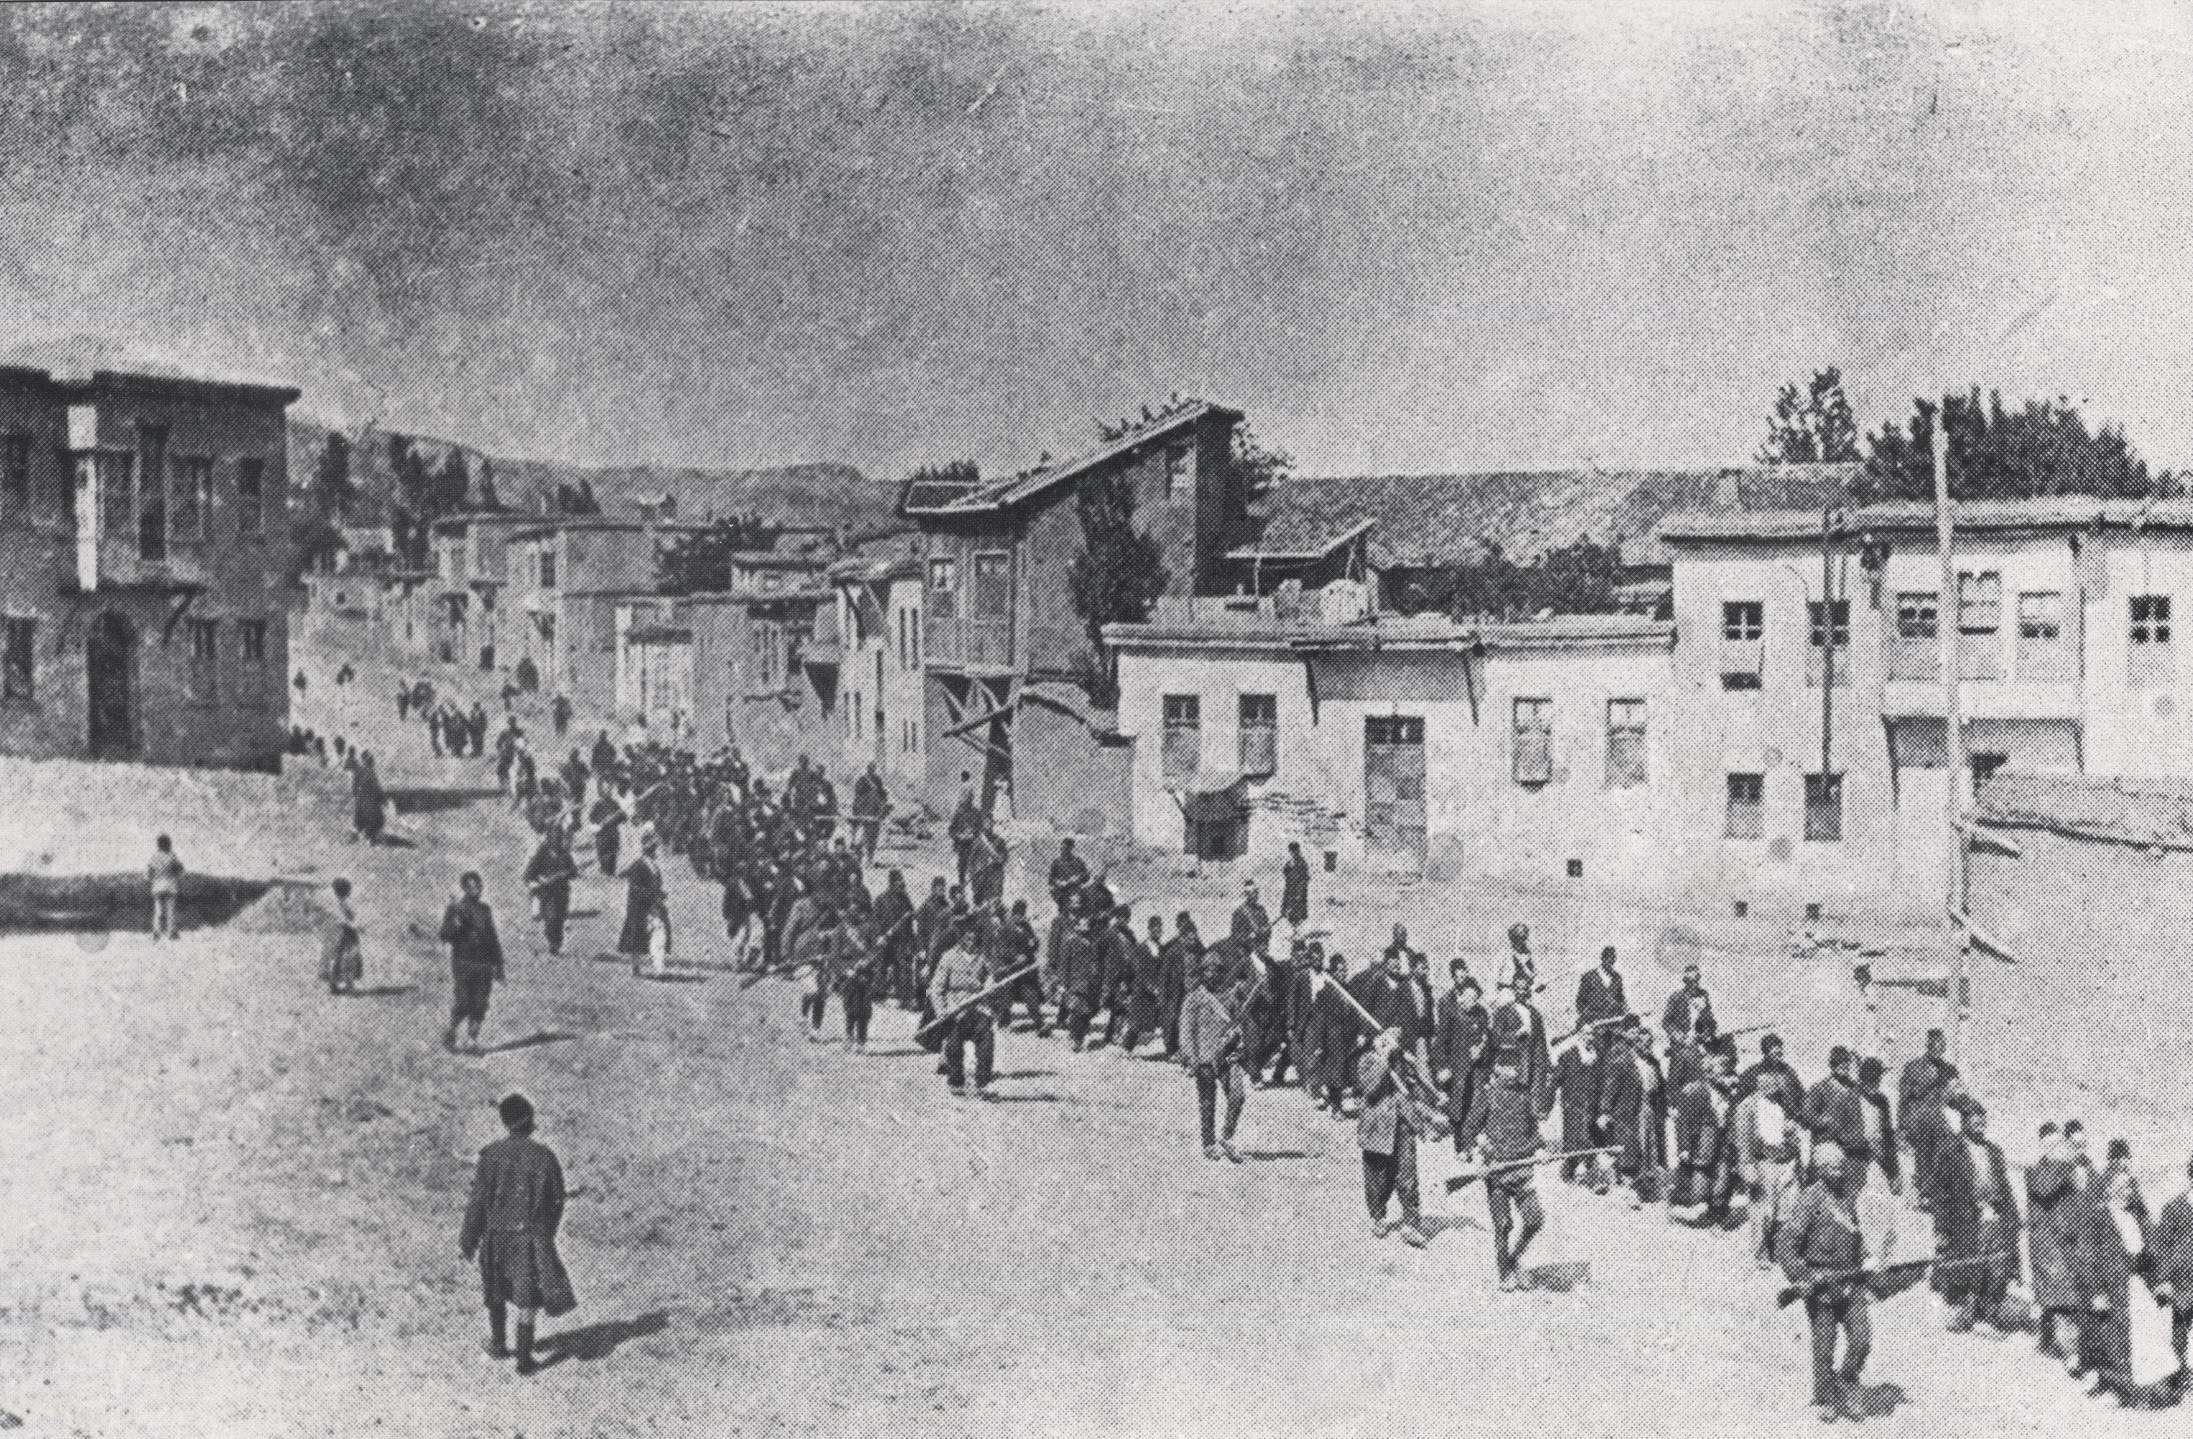 Armenian villagers being escorted to a nearby prison